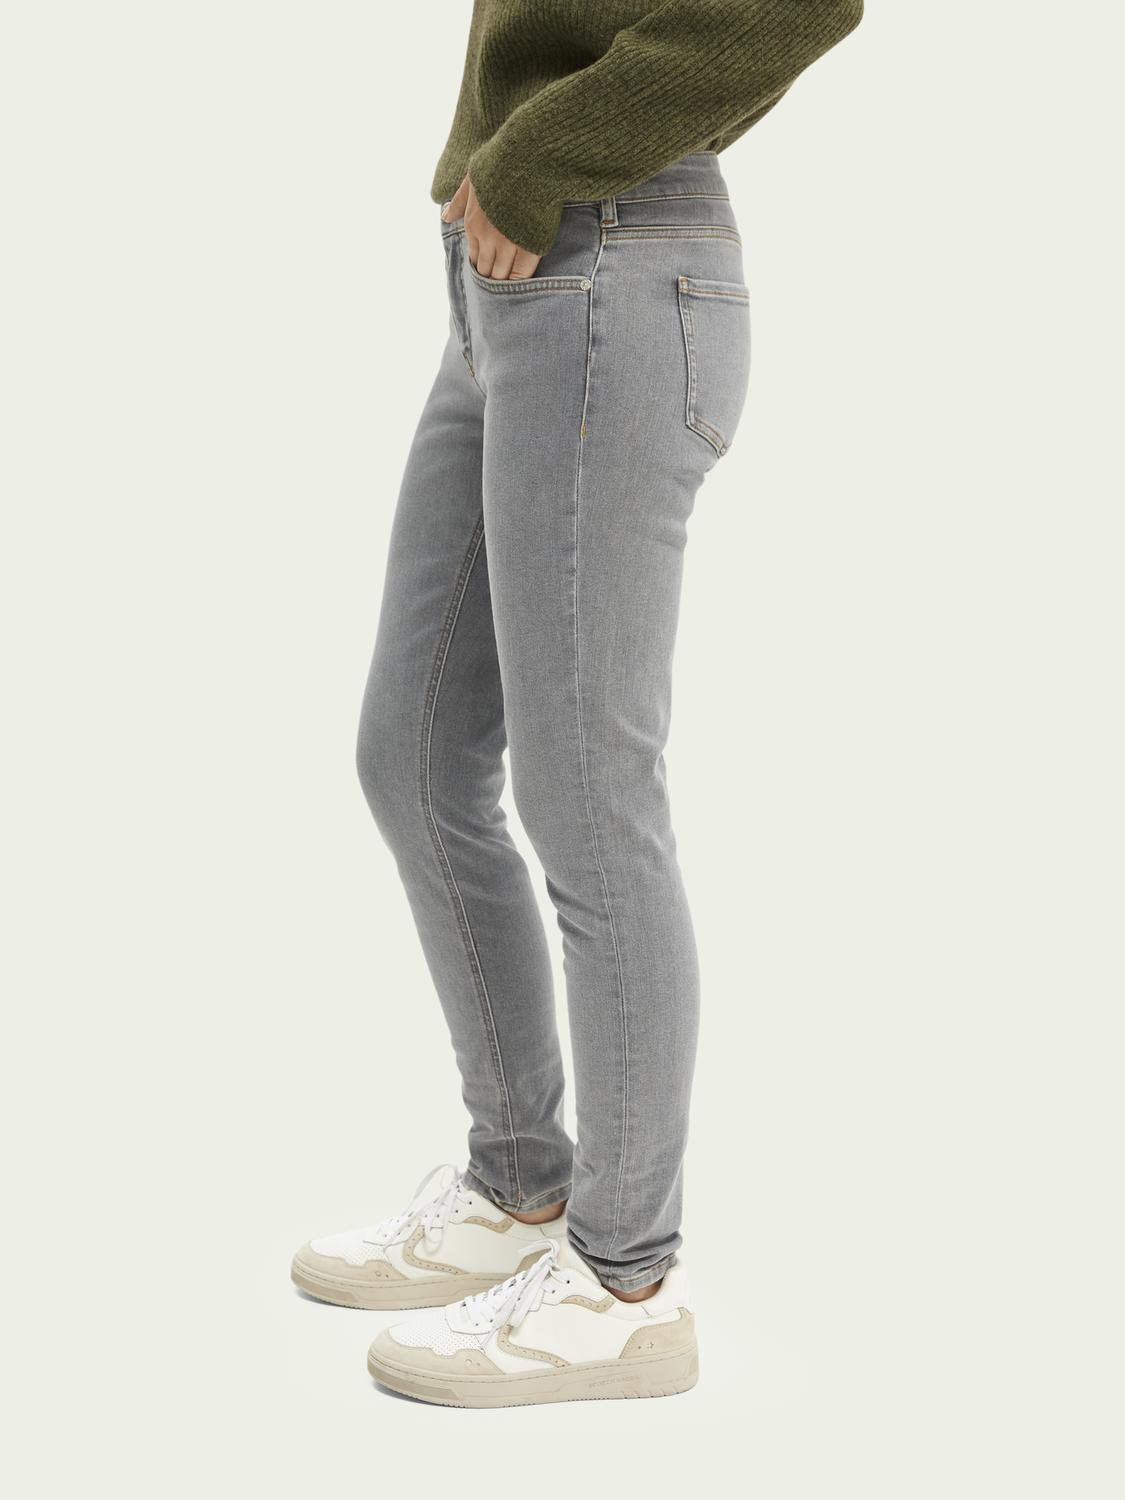 Bohemienne skinny-fit jeans —Nowhere to go 3